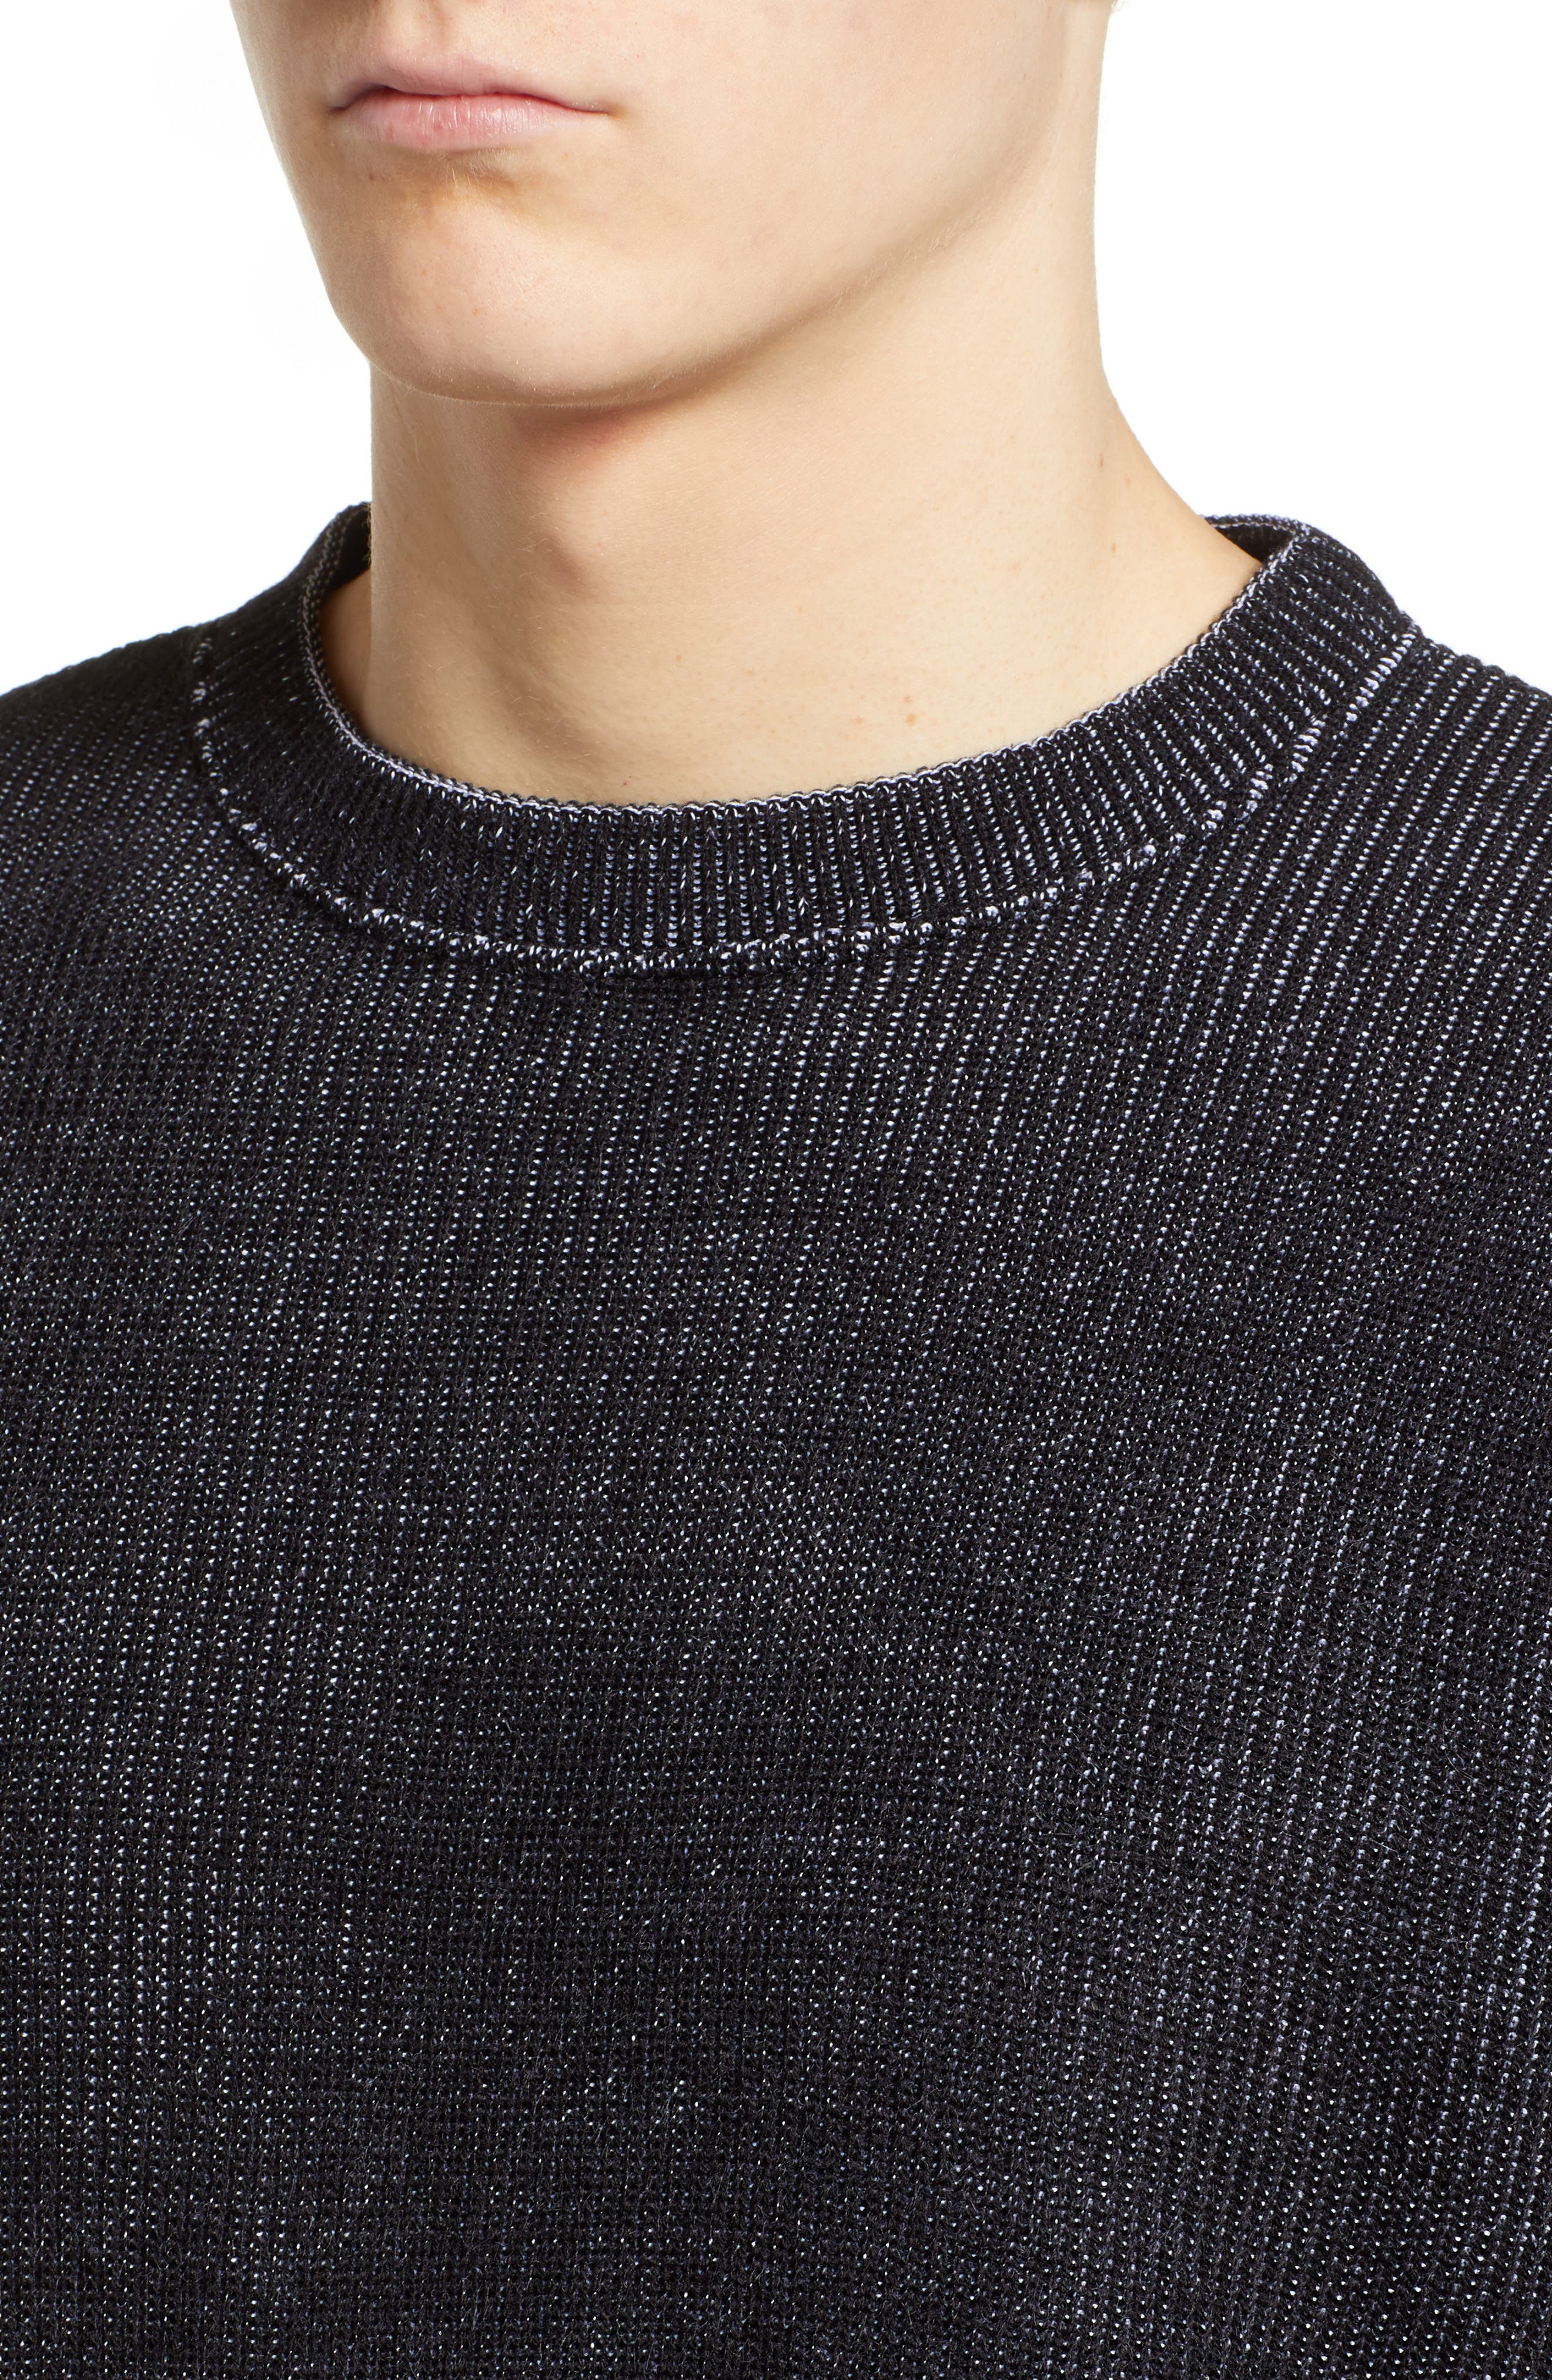 Plaited Crewneck Sweater,                             Alternate thumbnail 4, color,                             BLACK